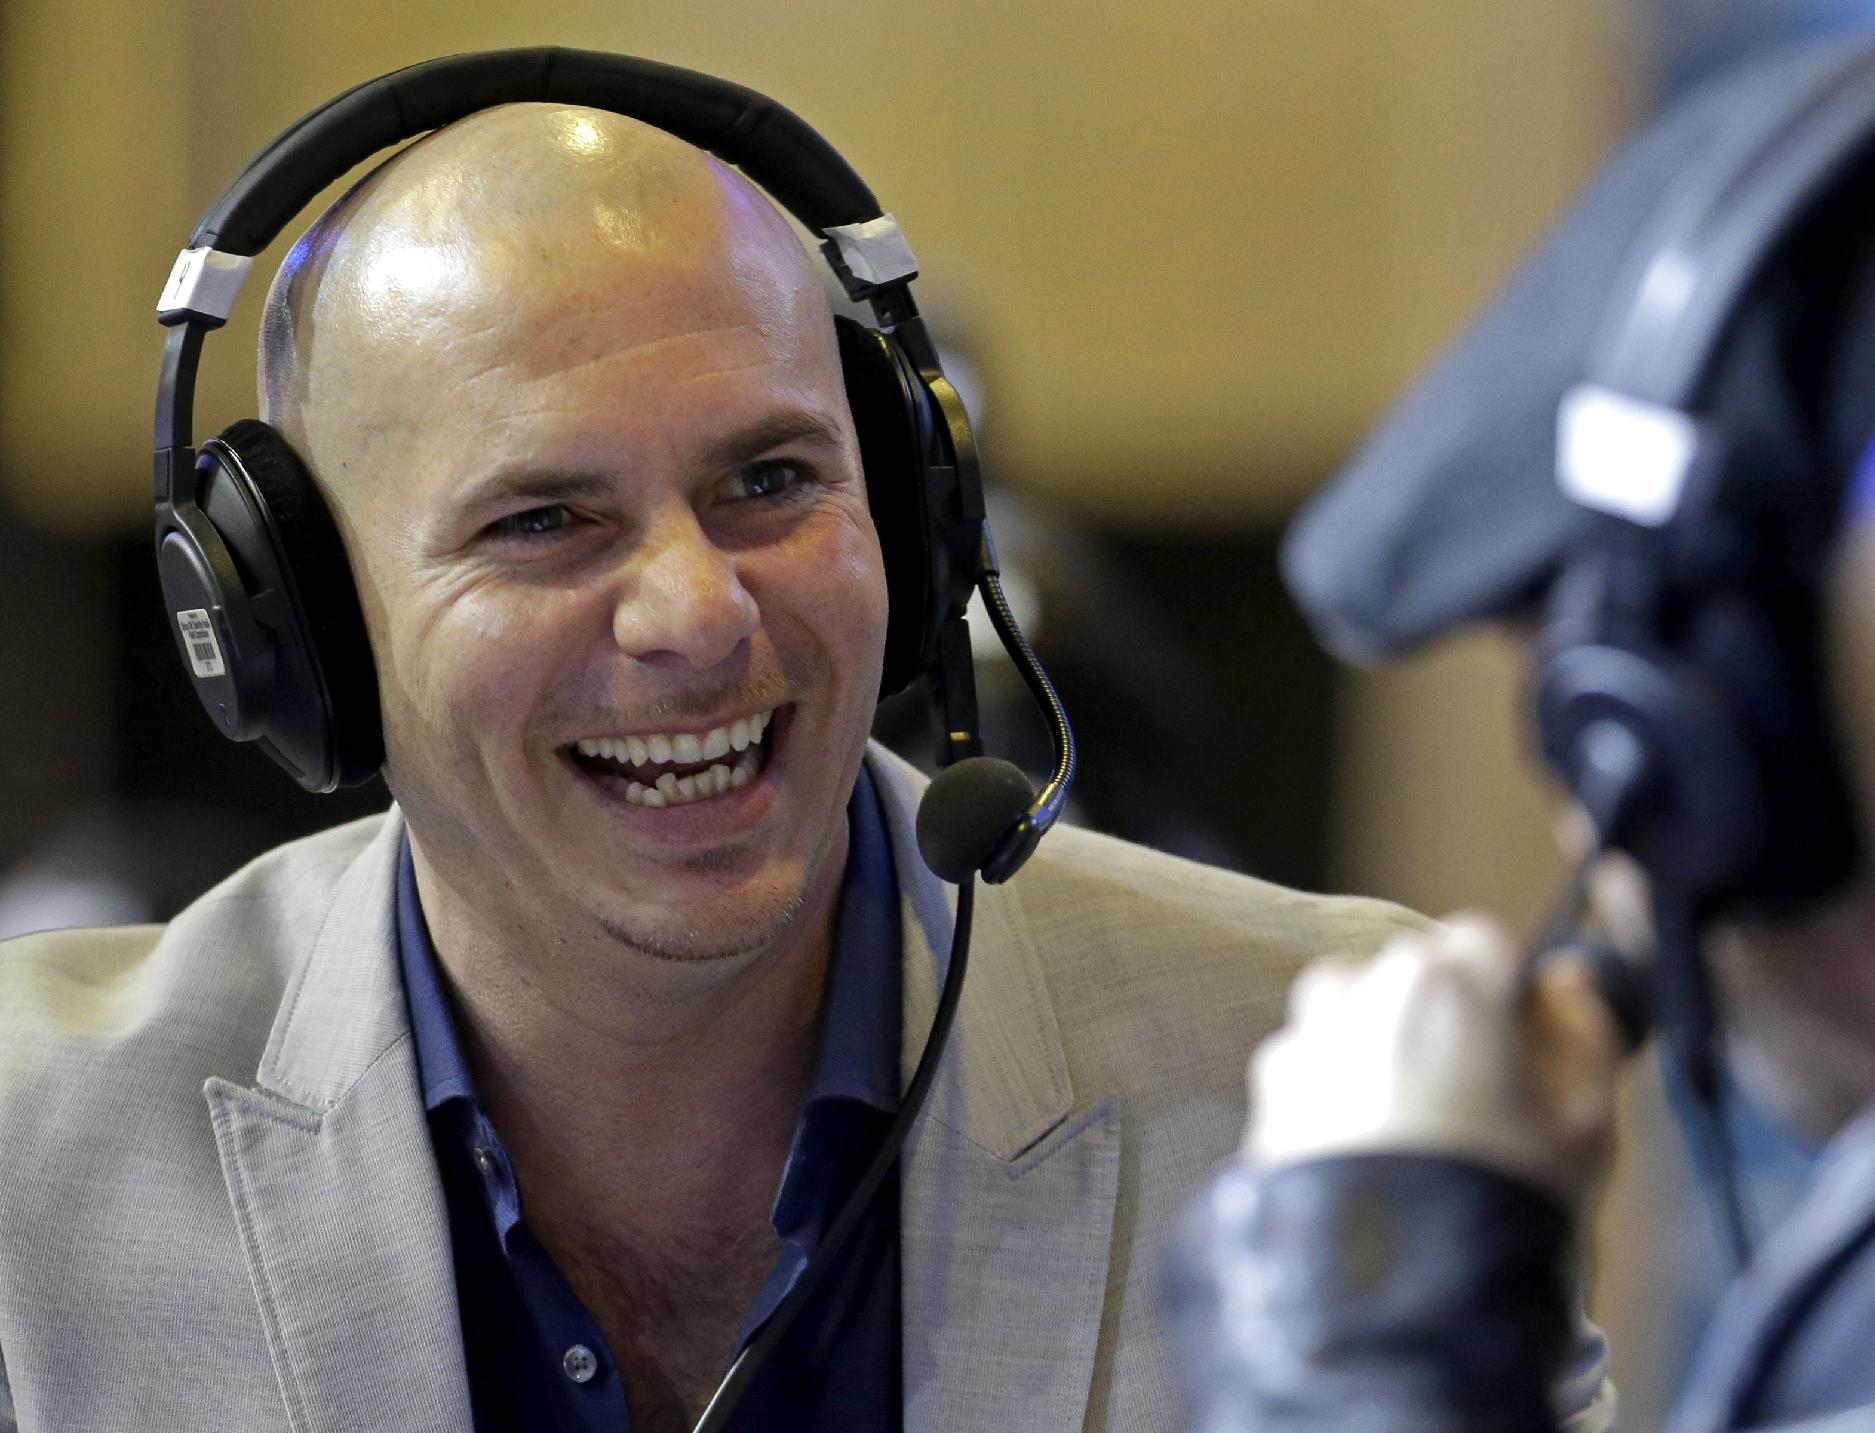 Rapper Pitbull to root for, then perform for, Patriots